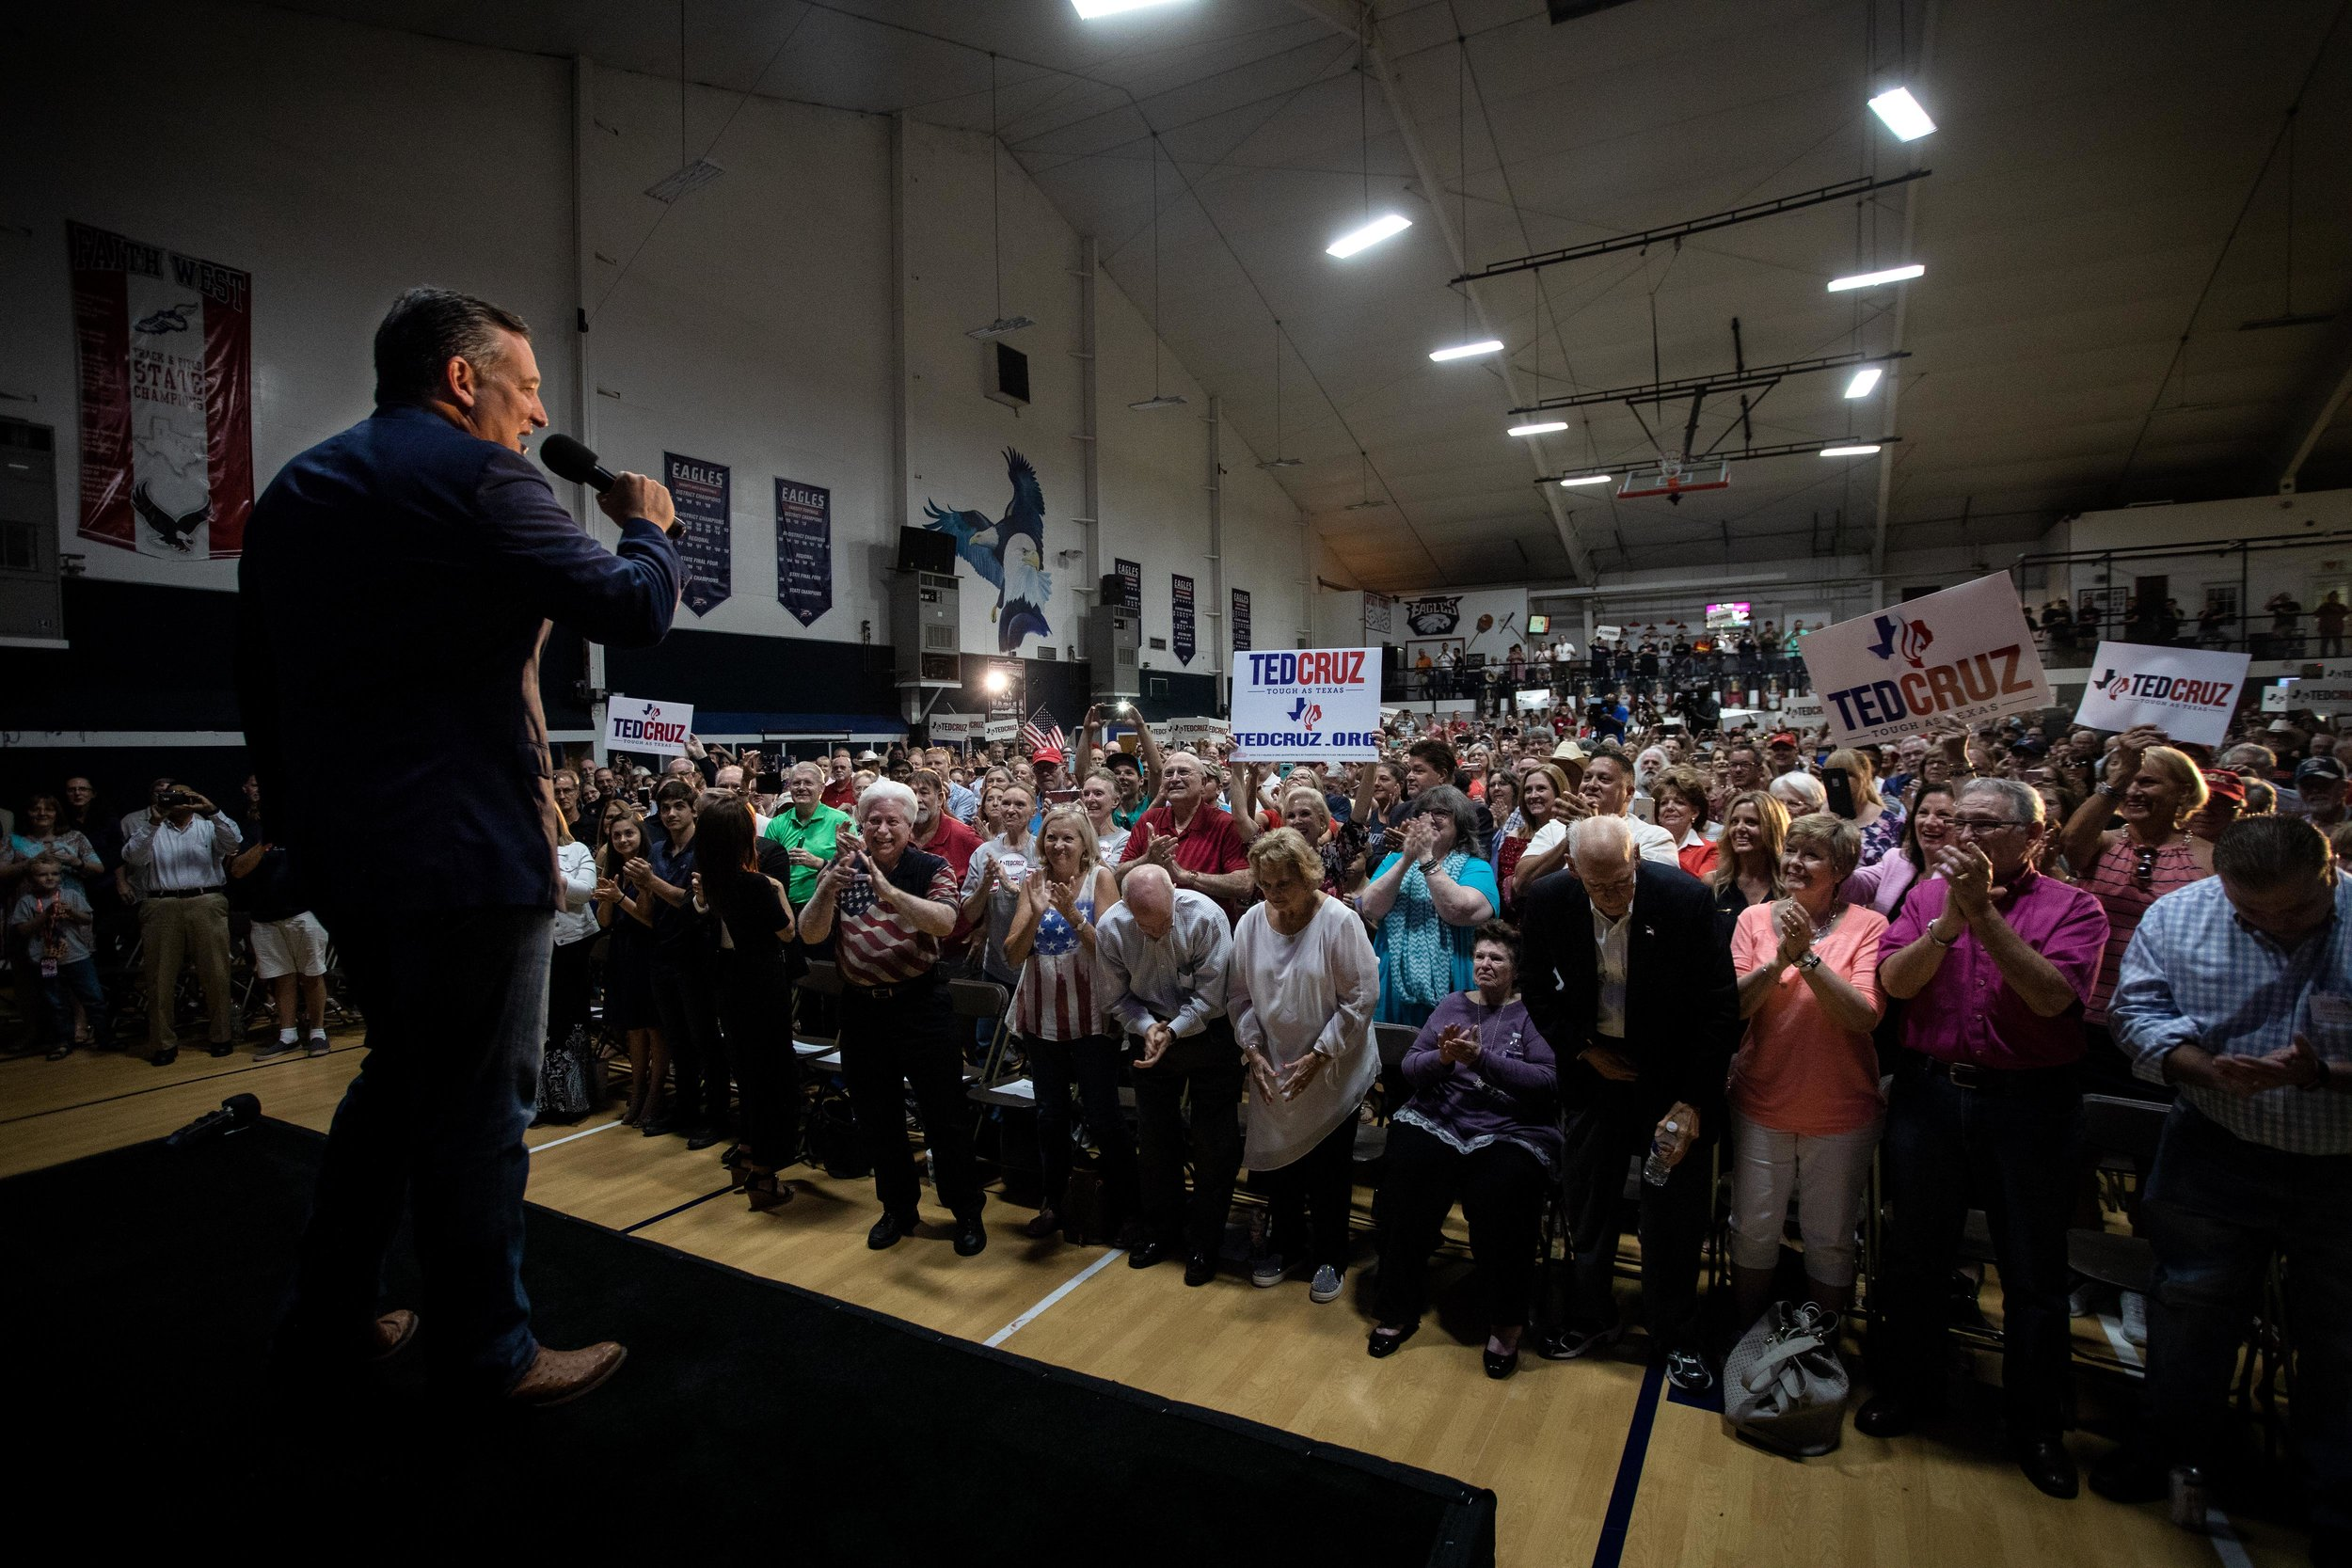 AUSTIN, TX. Sept. 8, 2018. U.S. Sen. Ted Cruz speaks during his campaign event in Katy, Texas. Montinique Monroe for KUT News